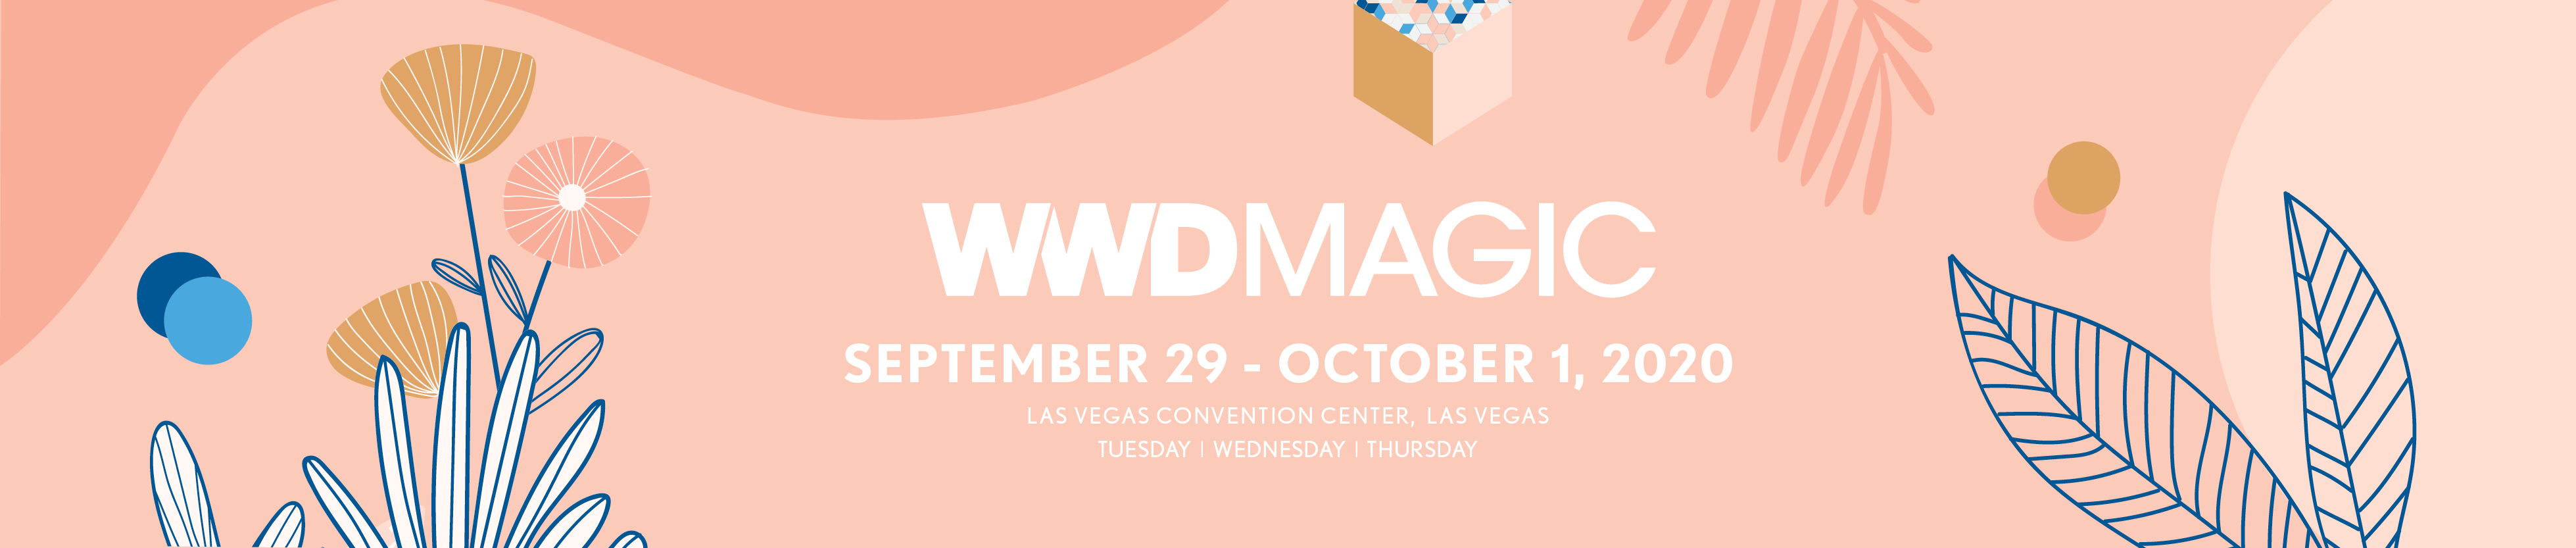 WWDMAGIC | MAGIC Las Vegas Fashion Trade Show